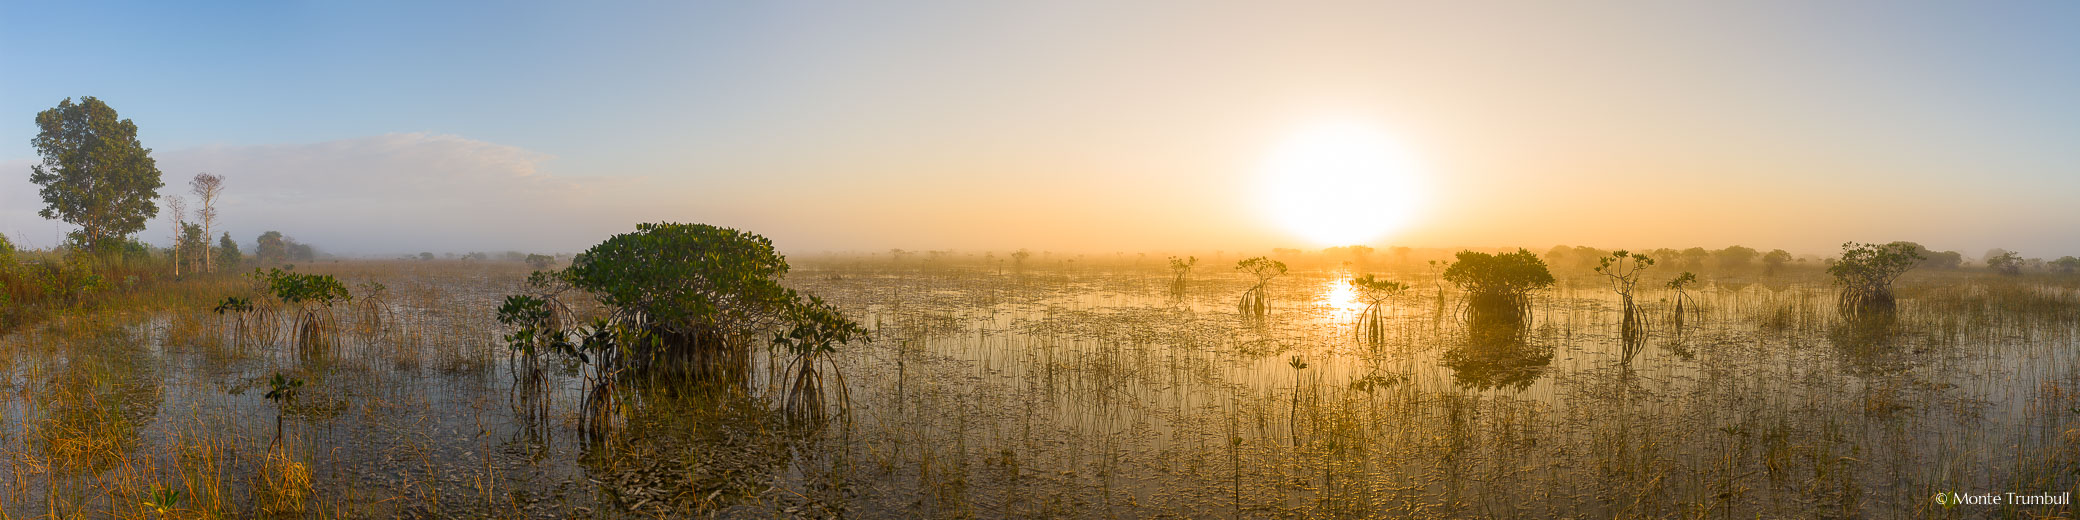 The rising sun burns its way through the last of the fog hanging over a slough filled with red mangroves in Everglades National Park, Florida.